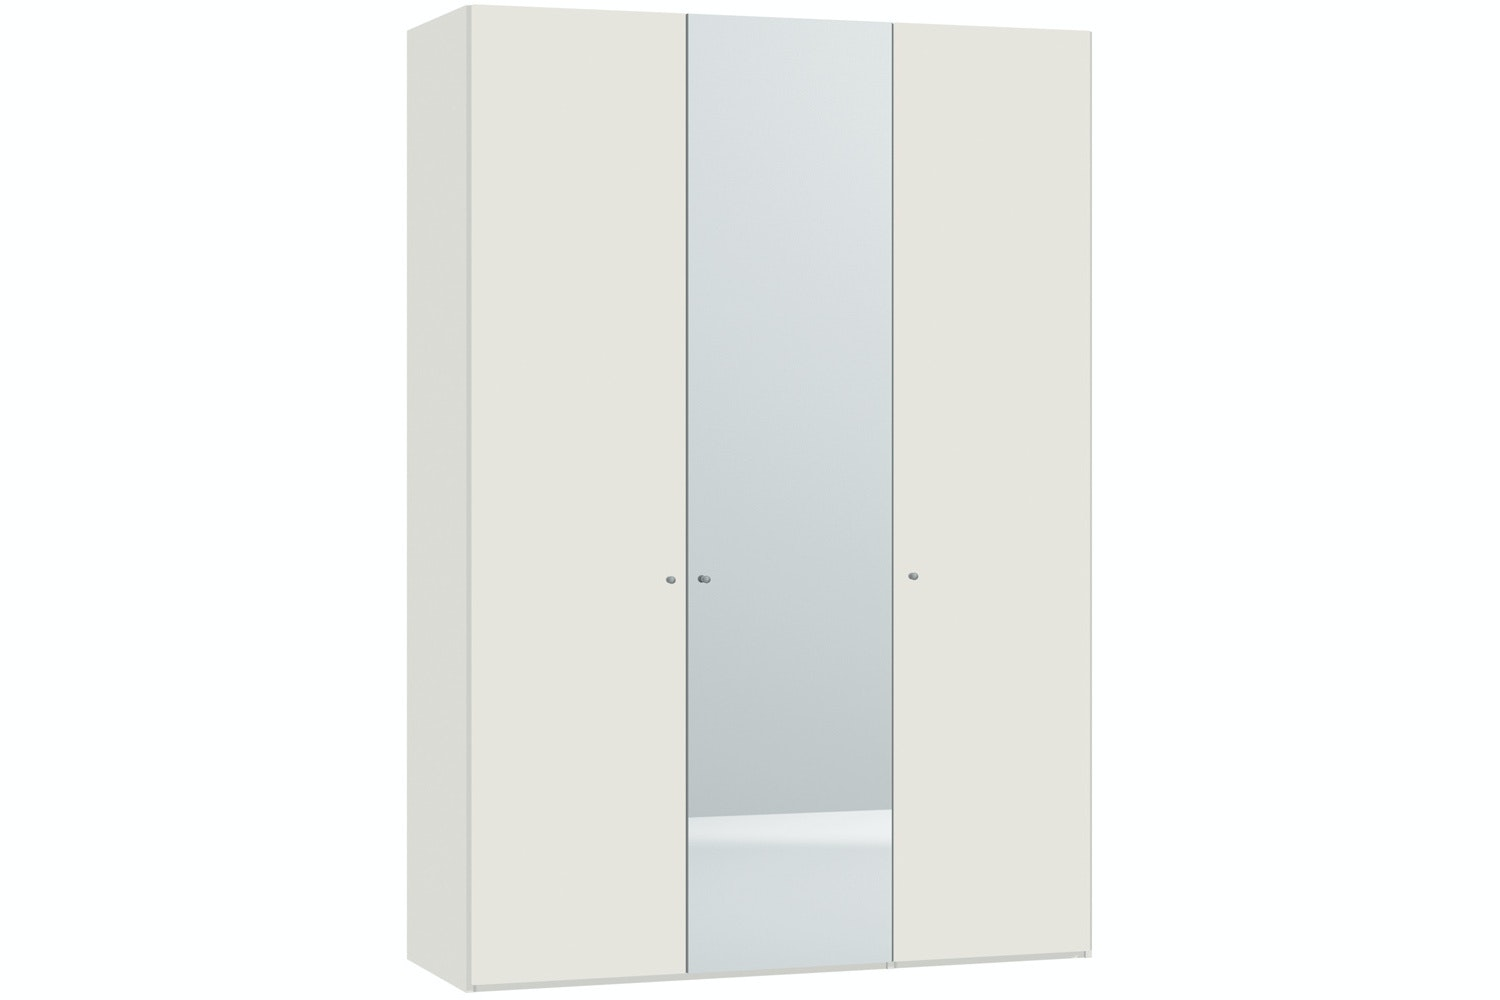 Yasmin Hinged 3 Door Wardrobe 152Cm | White High Gloss + Mirror